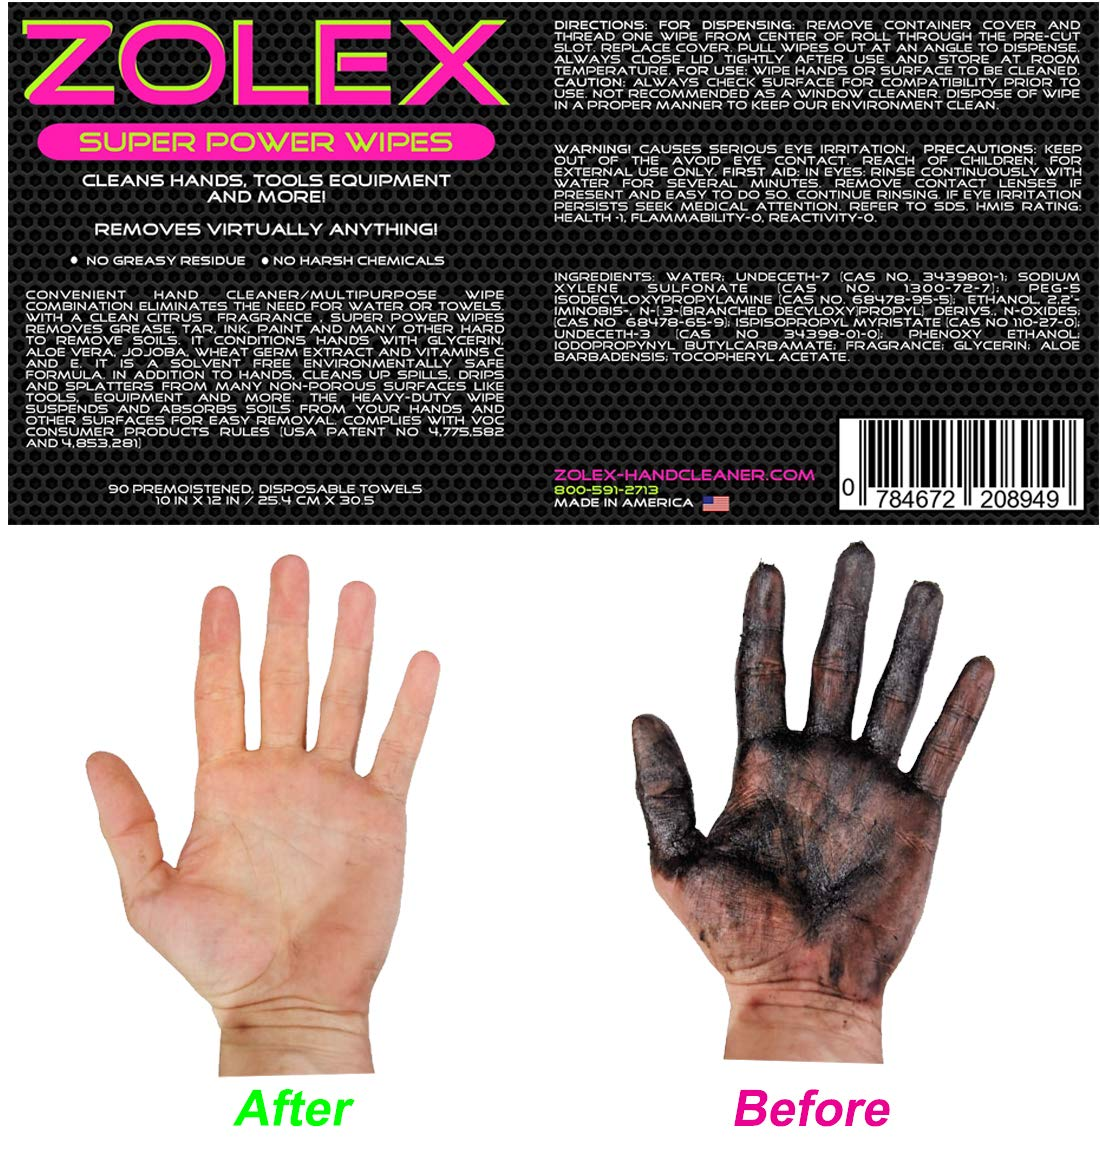 Zolex Water Activated Hand Cleaner for Working Hands| Stain Remover for Heavy Duty Workers | Grease Remover for Auto Mechanics - Non-Toxic Petroleum Free | Commercial-Sized Pail (25 lb) by Zolex (Image #4)